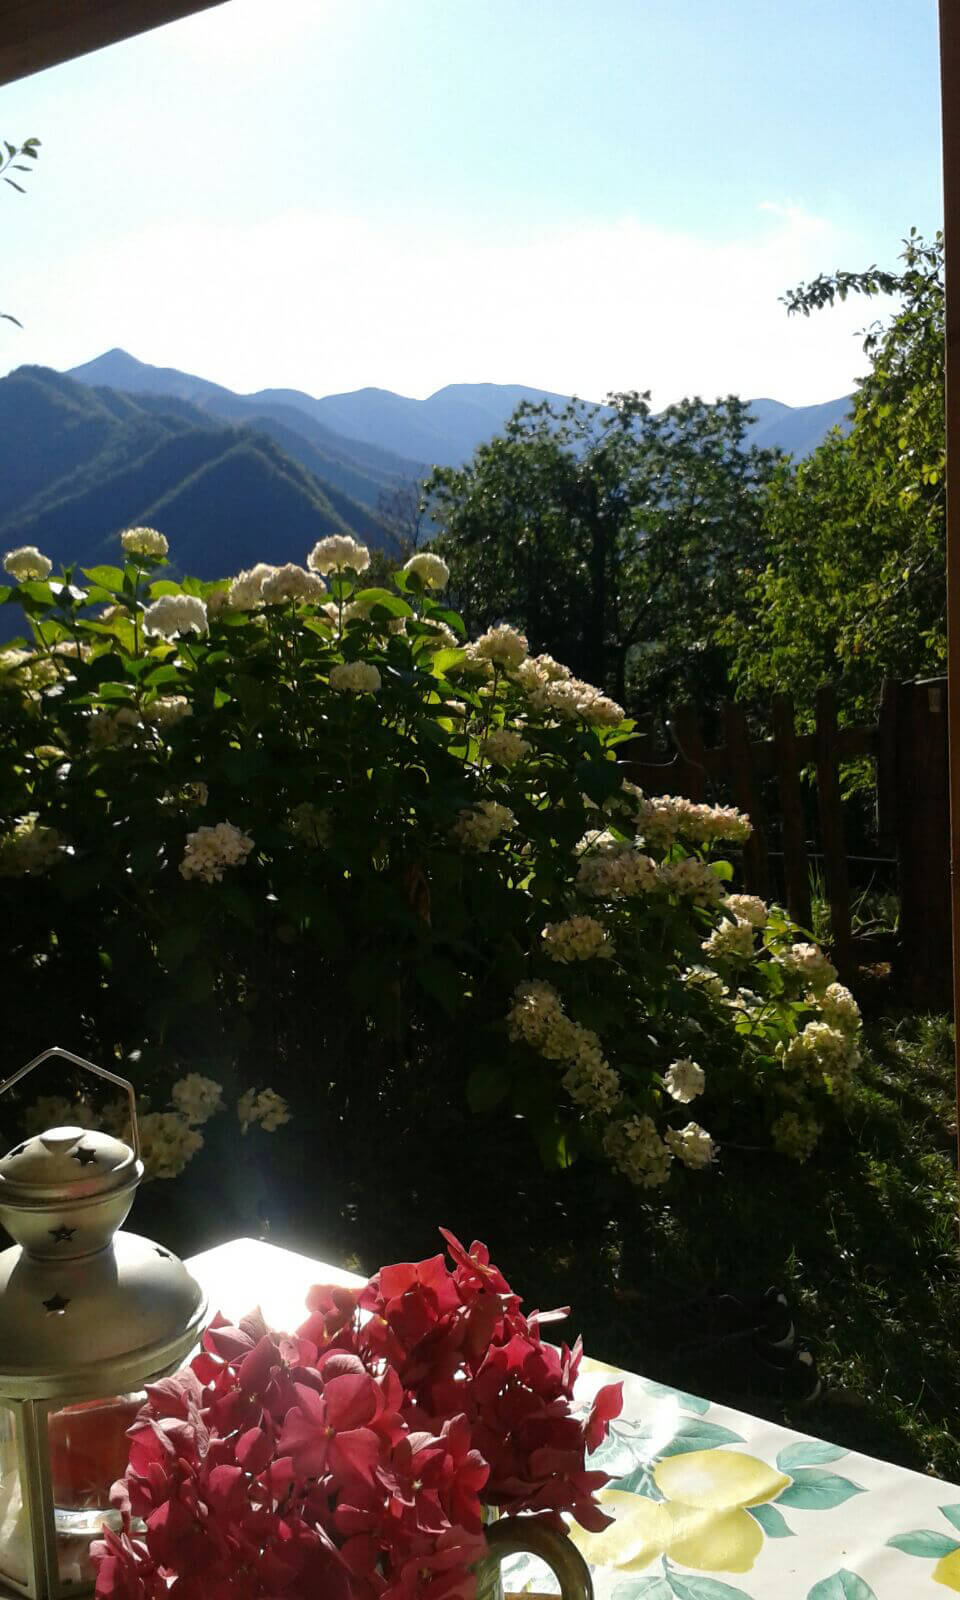 The view from the guest-house